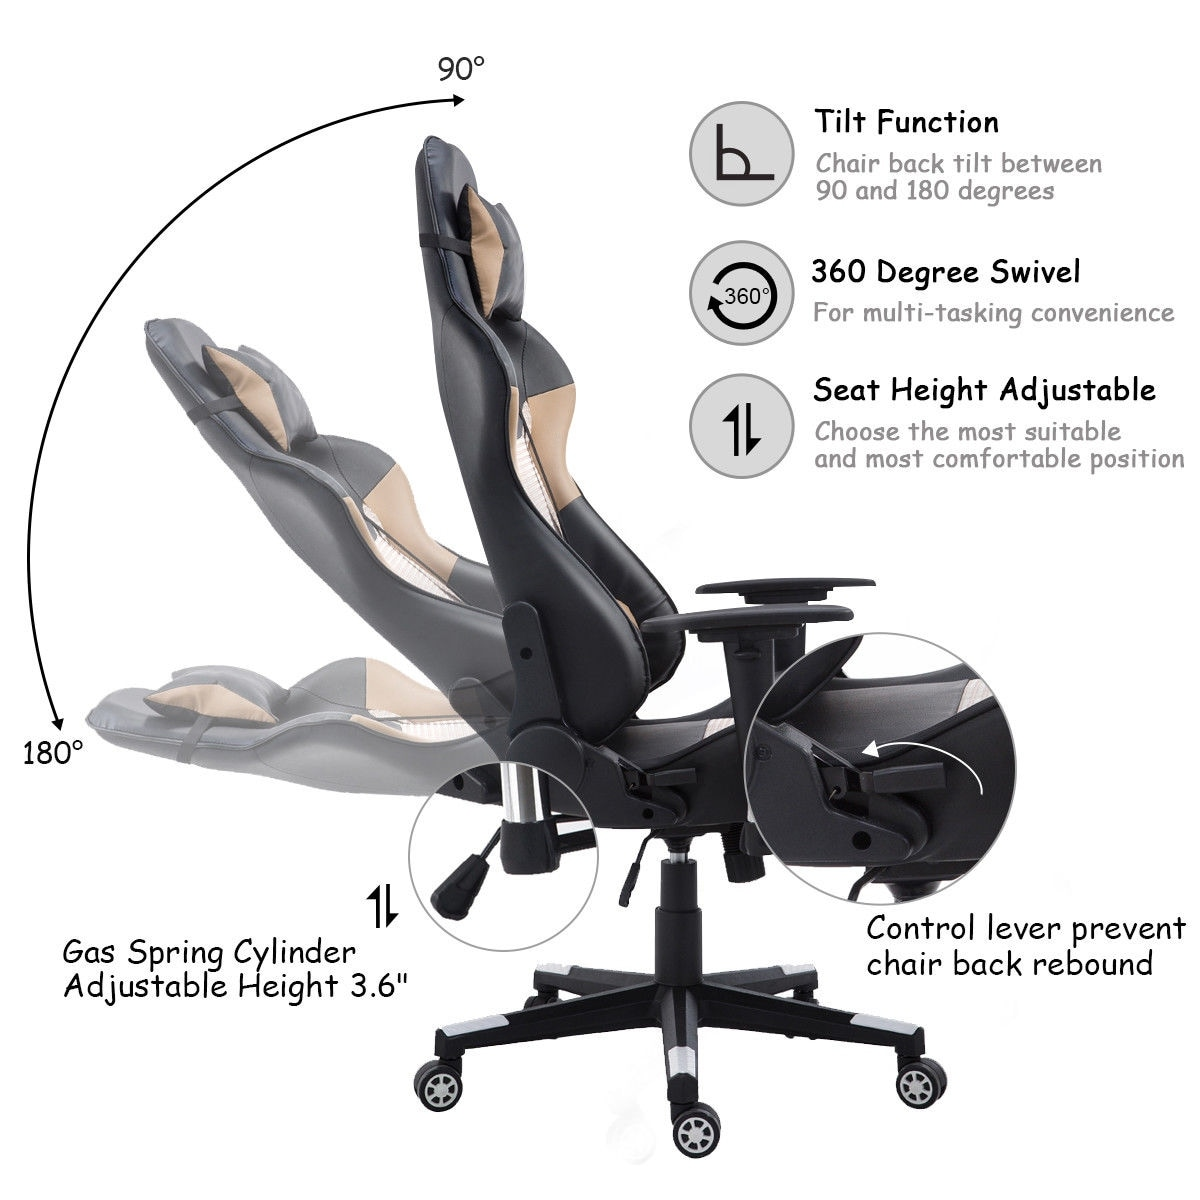 Shop Costway Executive Gaming Chair Racing Office Chair High Back w/Lumbar Support u0026 Headrest - Free Shipping Today - Overstock.com - 18730558  sc 1 st  Overstock.com & Shop Costway Executive Gaming Chair Racing Office Chair High Back w ...